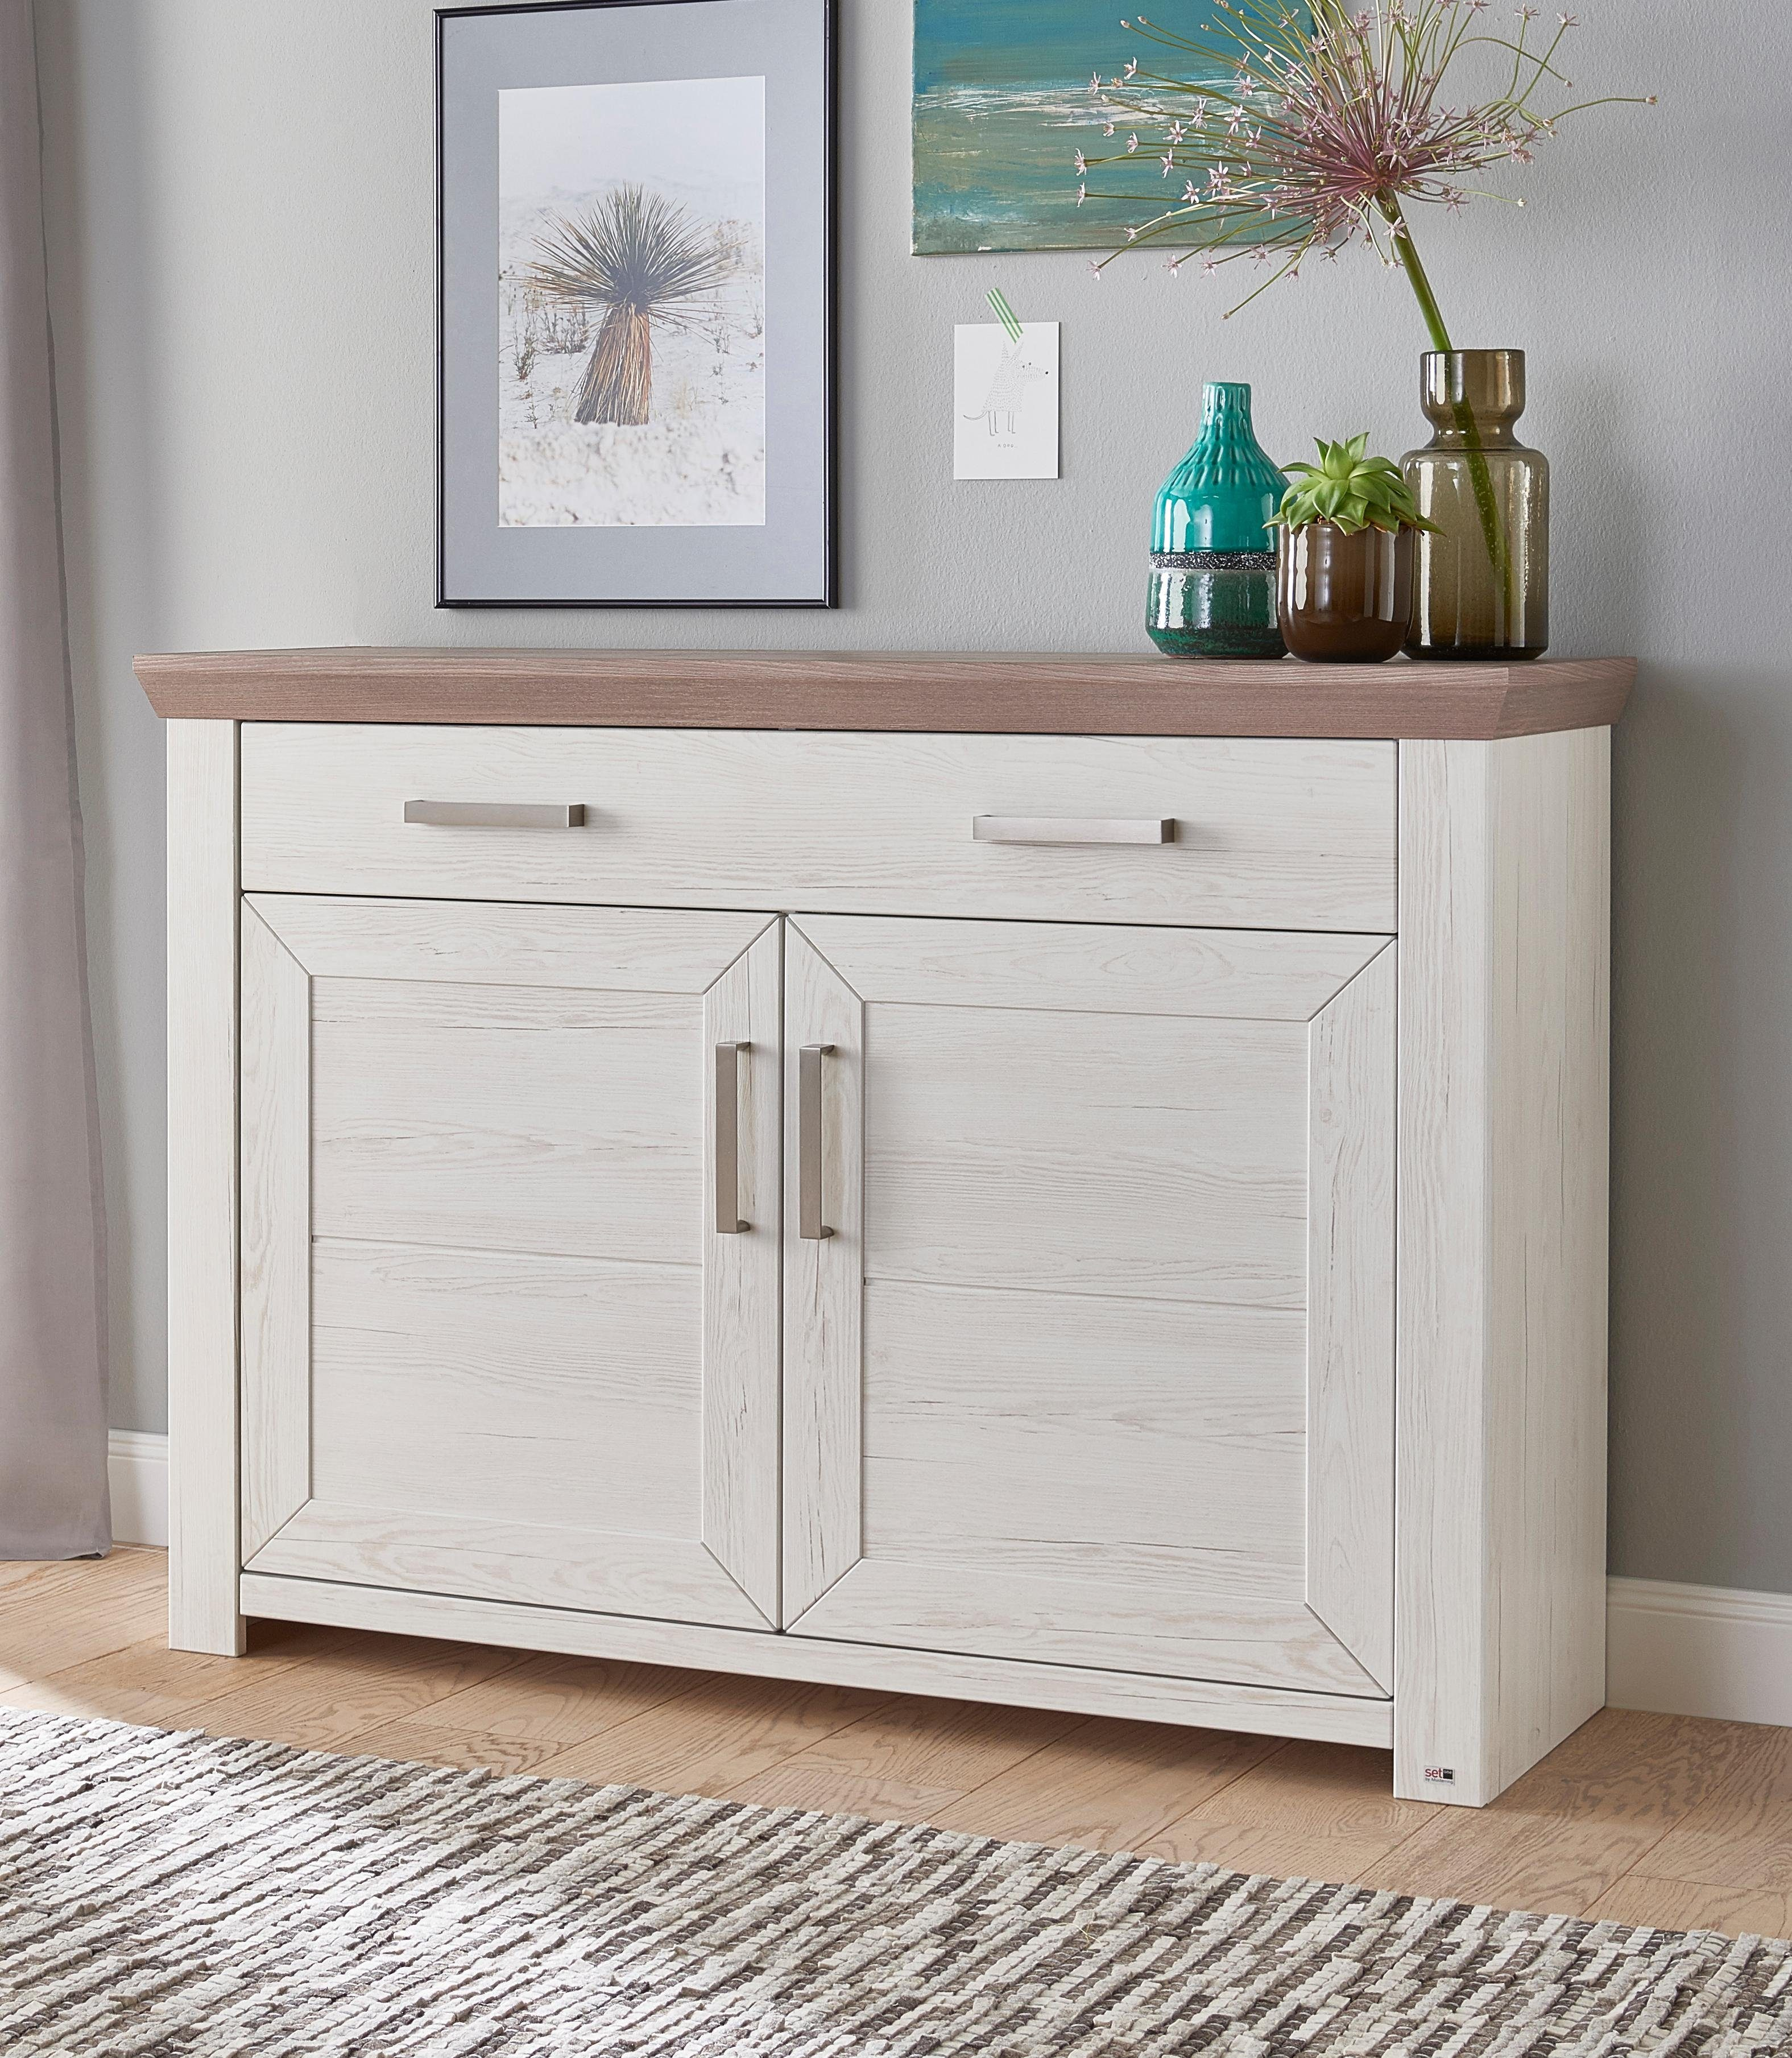 Set One By Musterring Sideboard  York Typ 53 Breite 129 Cm Online Kaufen Set One By Musterring Tv Boards Komnit Store